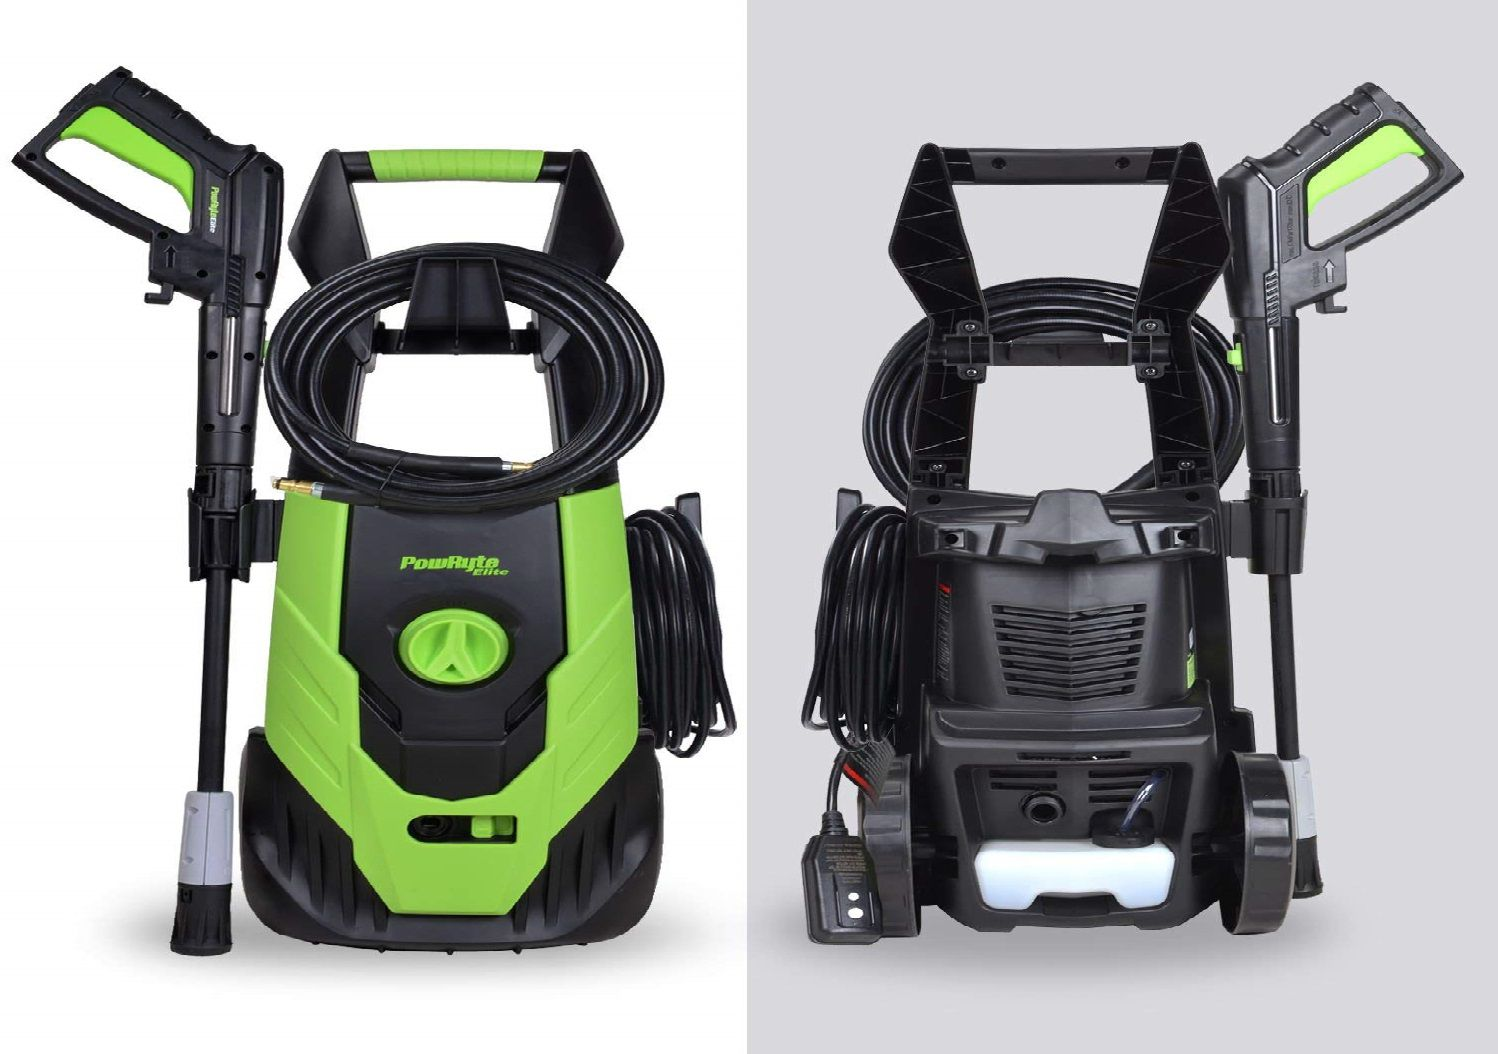 PowRyte Elite 2100 PSI Electric Power Washer Review